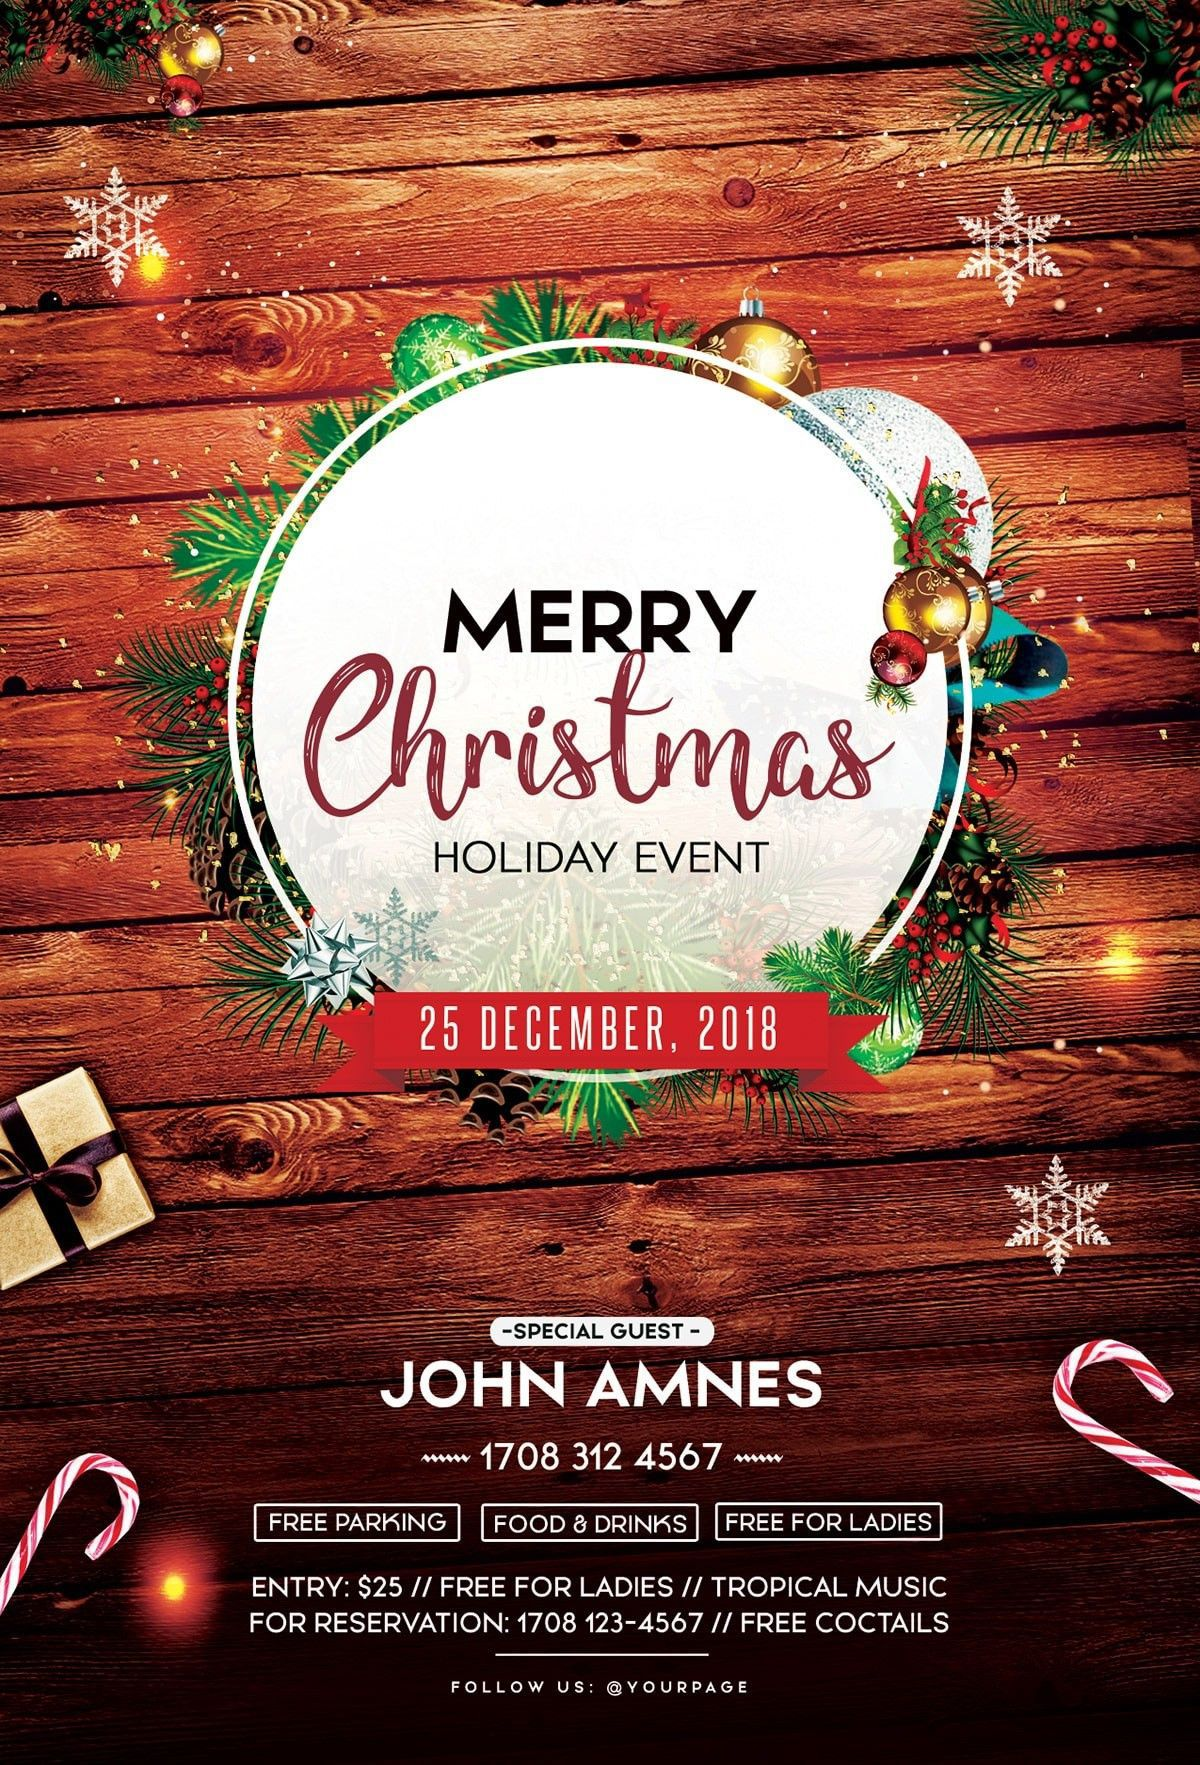 002 Remarkable Free Christma Poster Template High Resolution  Uk Party Download FairFull